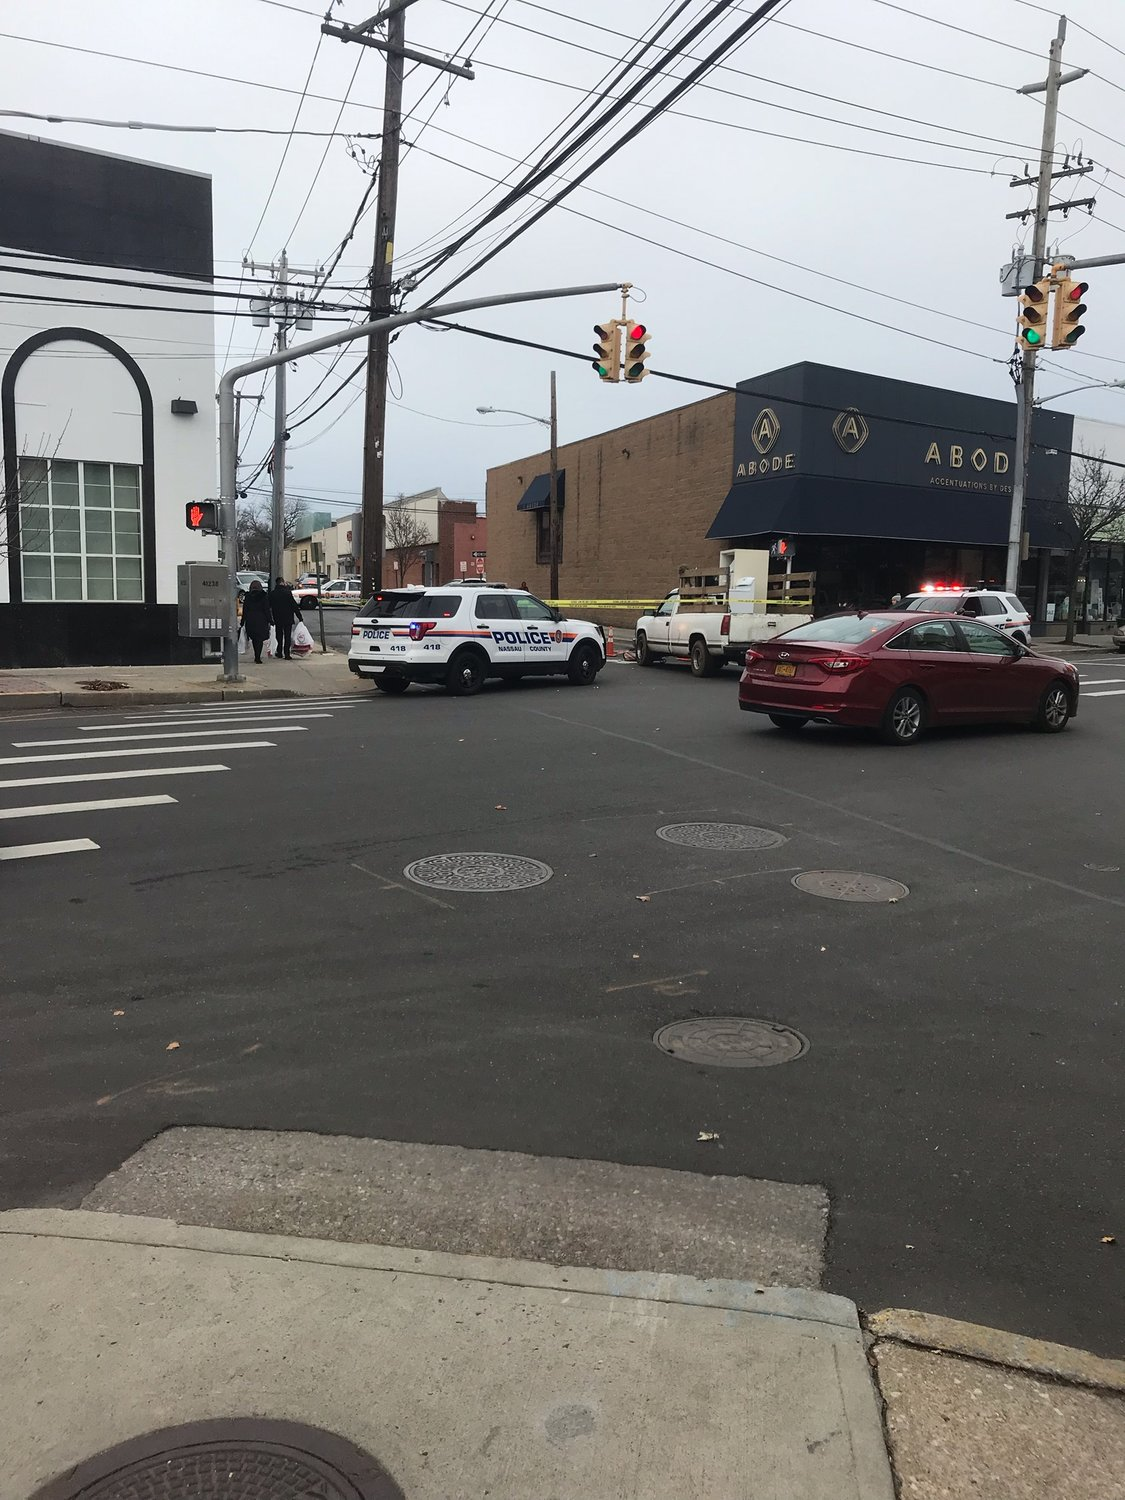 Nassau County police are investigating an accident, where a woman was hit by a white-colored pickup truck between at Washington and Central avenues between Cedarhurst and Lawrence on Dec. 6.